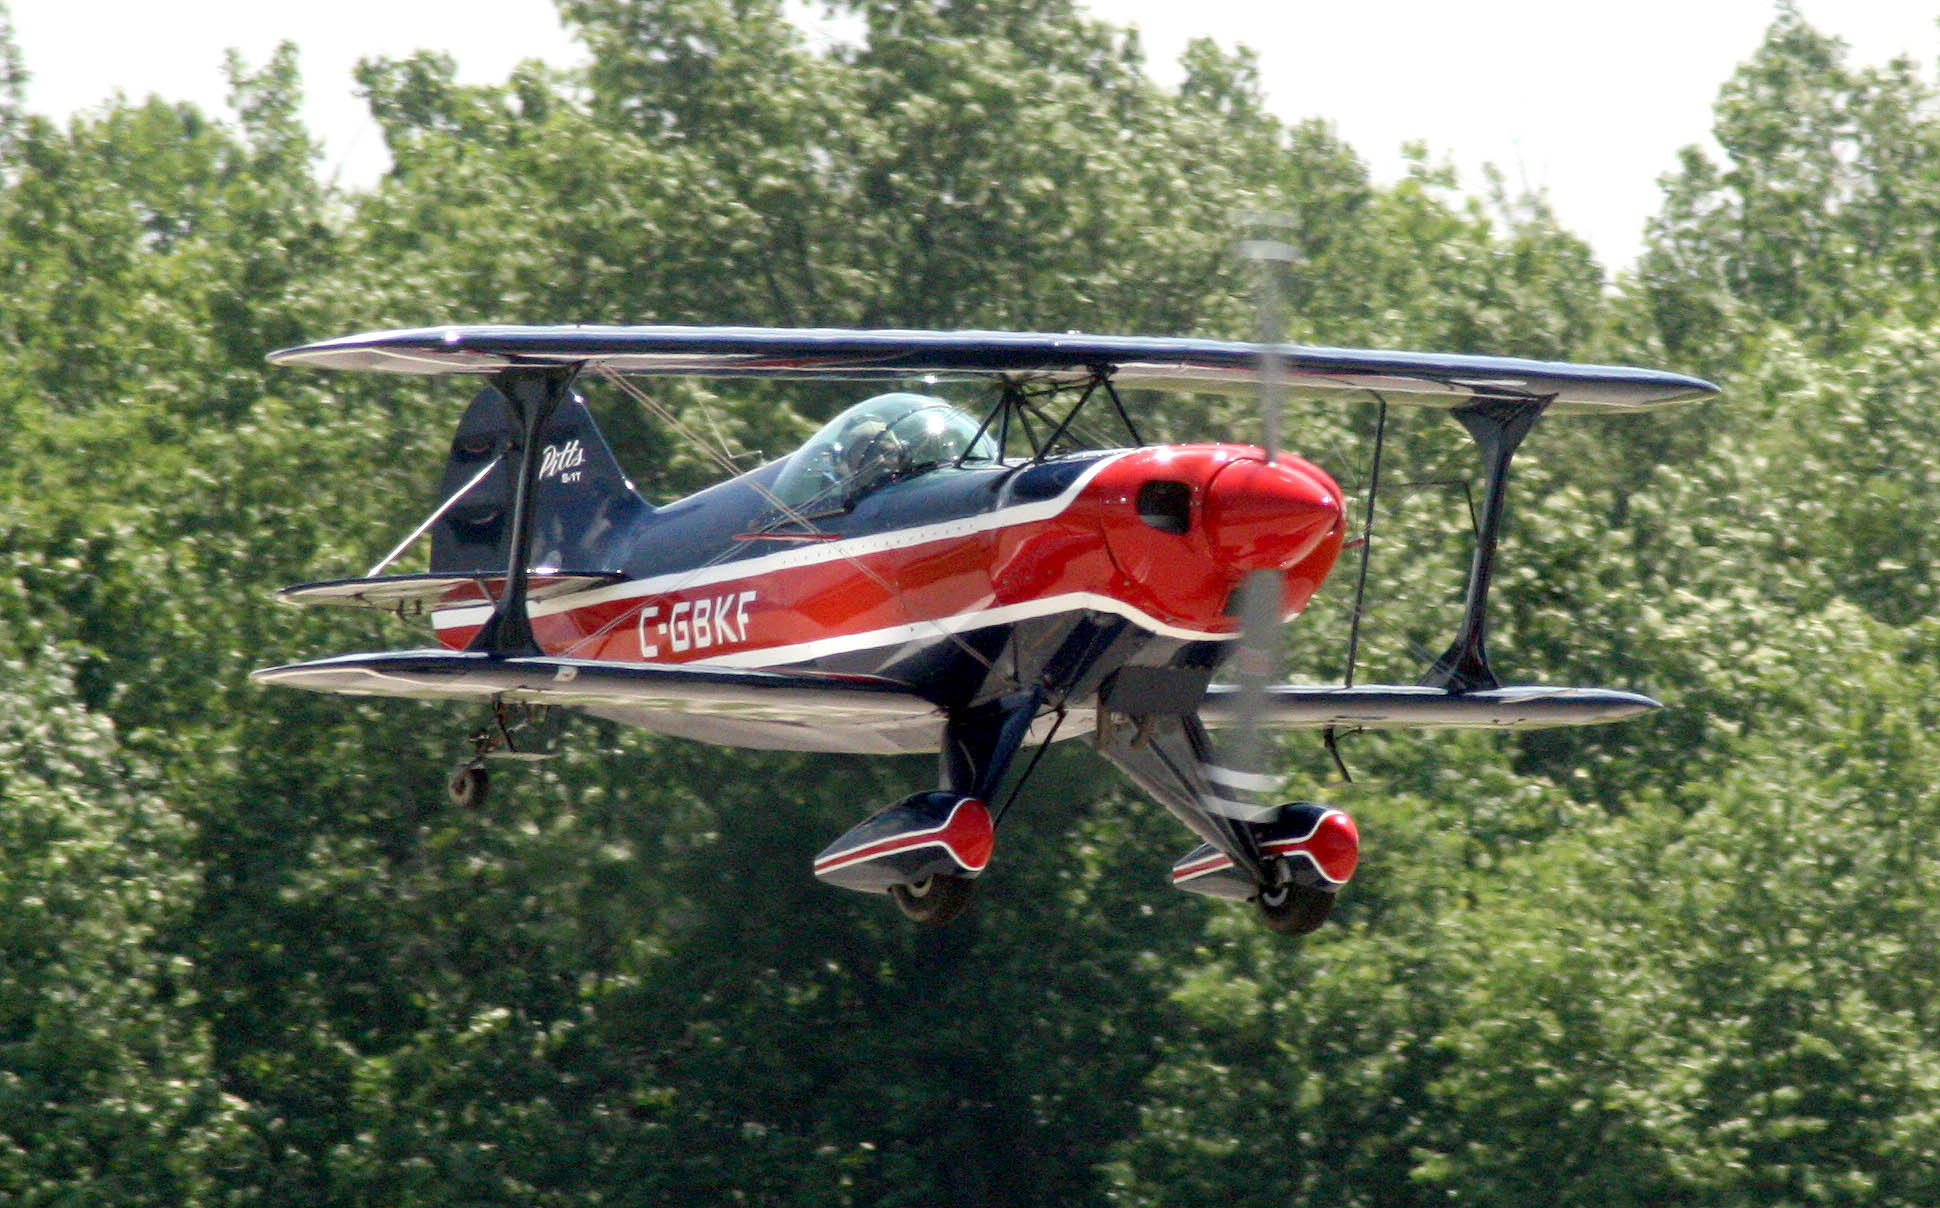 Pitts racer Aerobatic show, Ohio